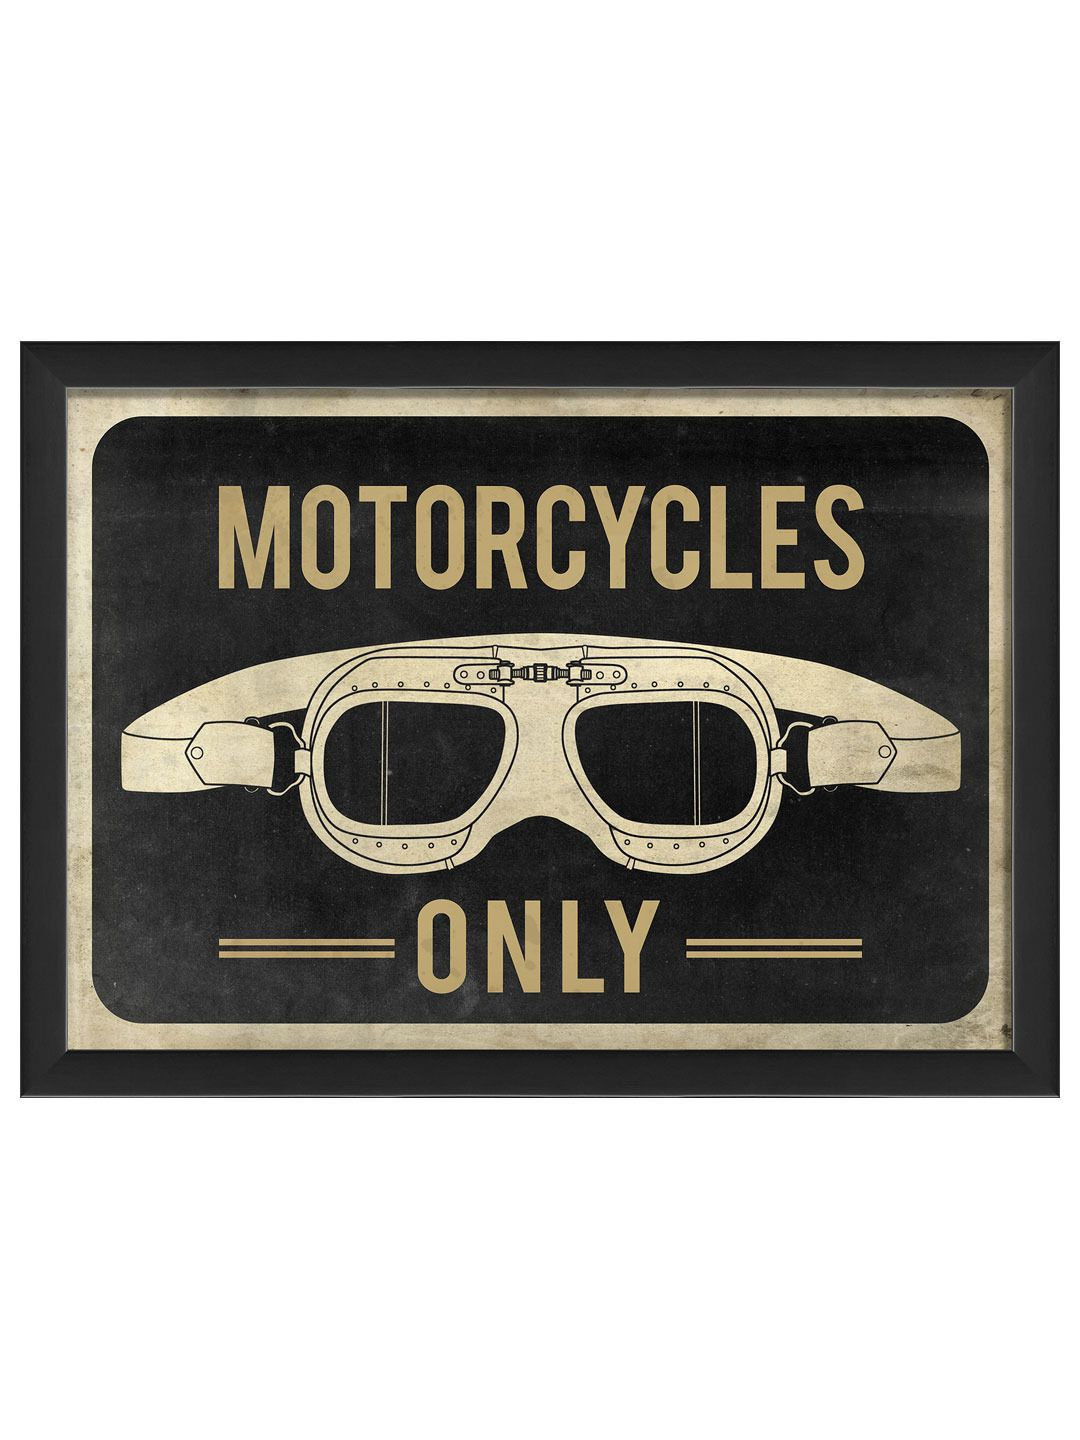 Motorcycles Only Goggles by Artwork Enclosed - for the man cave ...